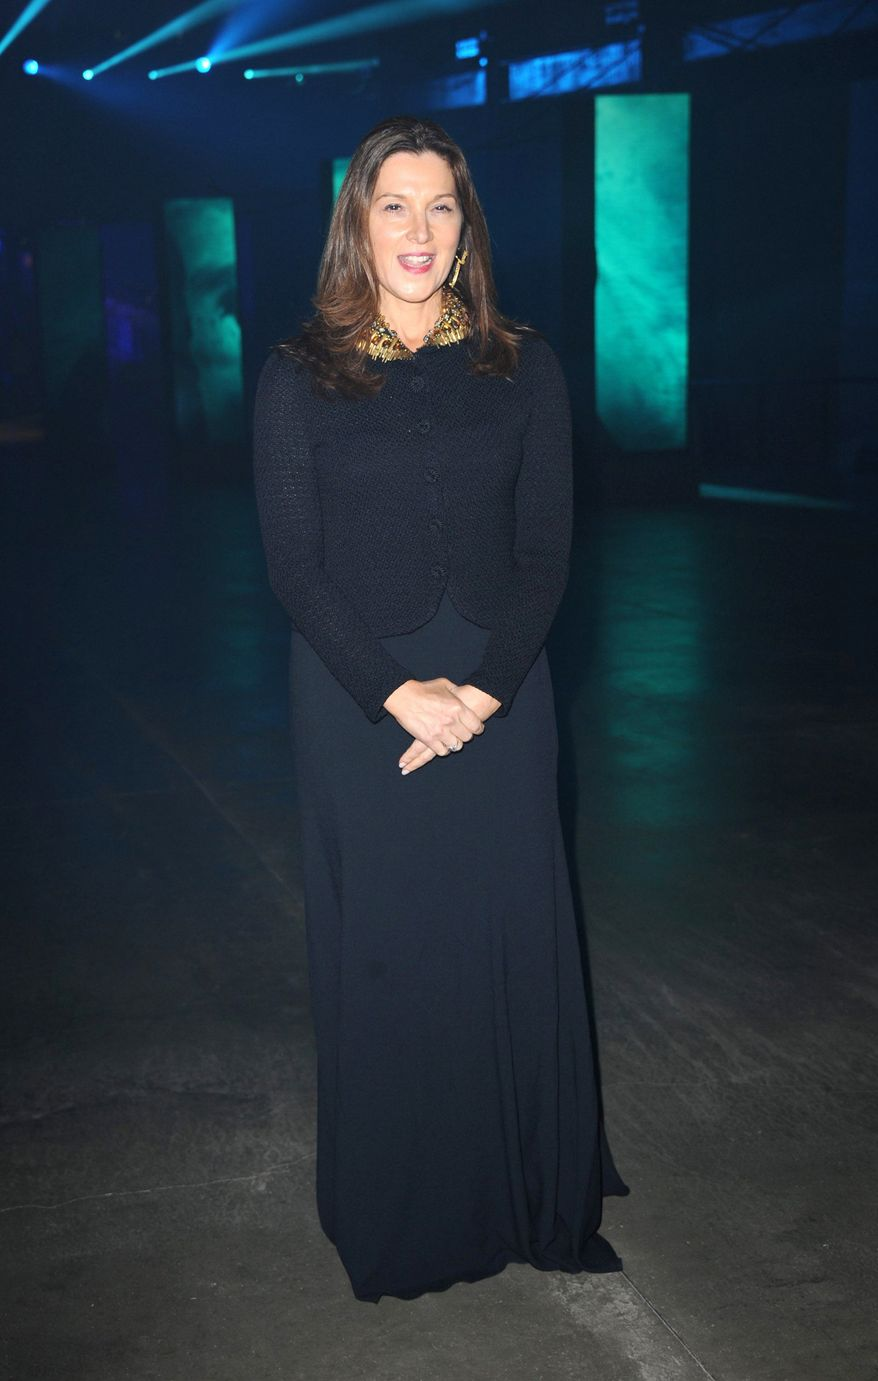 """Barbara Broccoli poses at the """"Skyfall"""" premiere after party at Tate Modern on Tuesday, Oct. 23, 2012 in London.  (Photo by Stewart Wilson/Invision/AP)"""